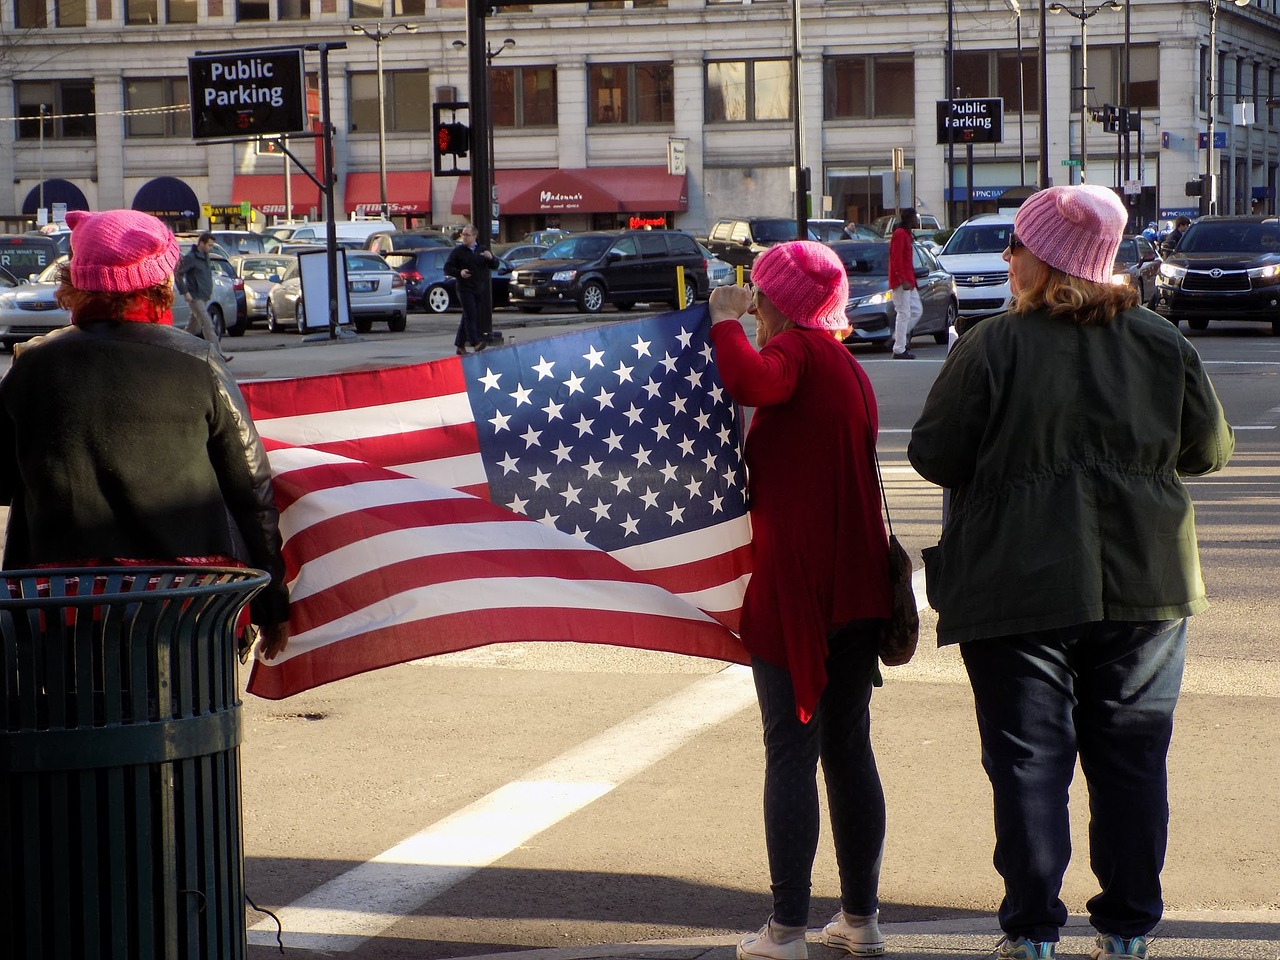 women u s flag protest free photo